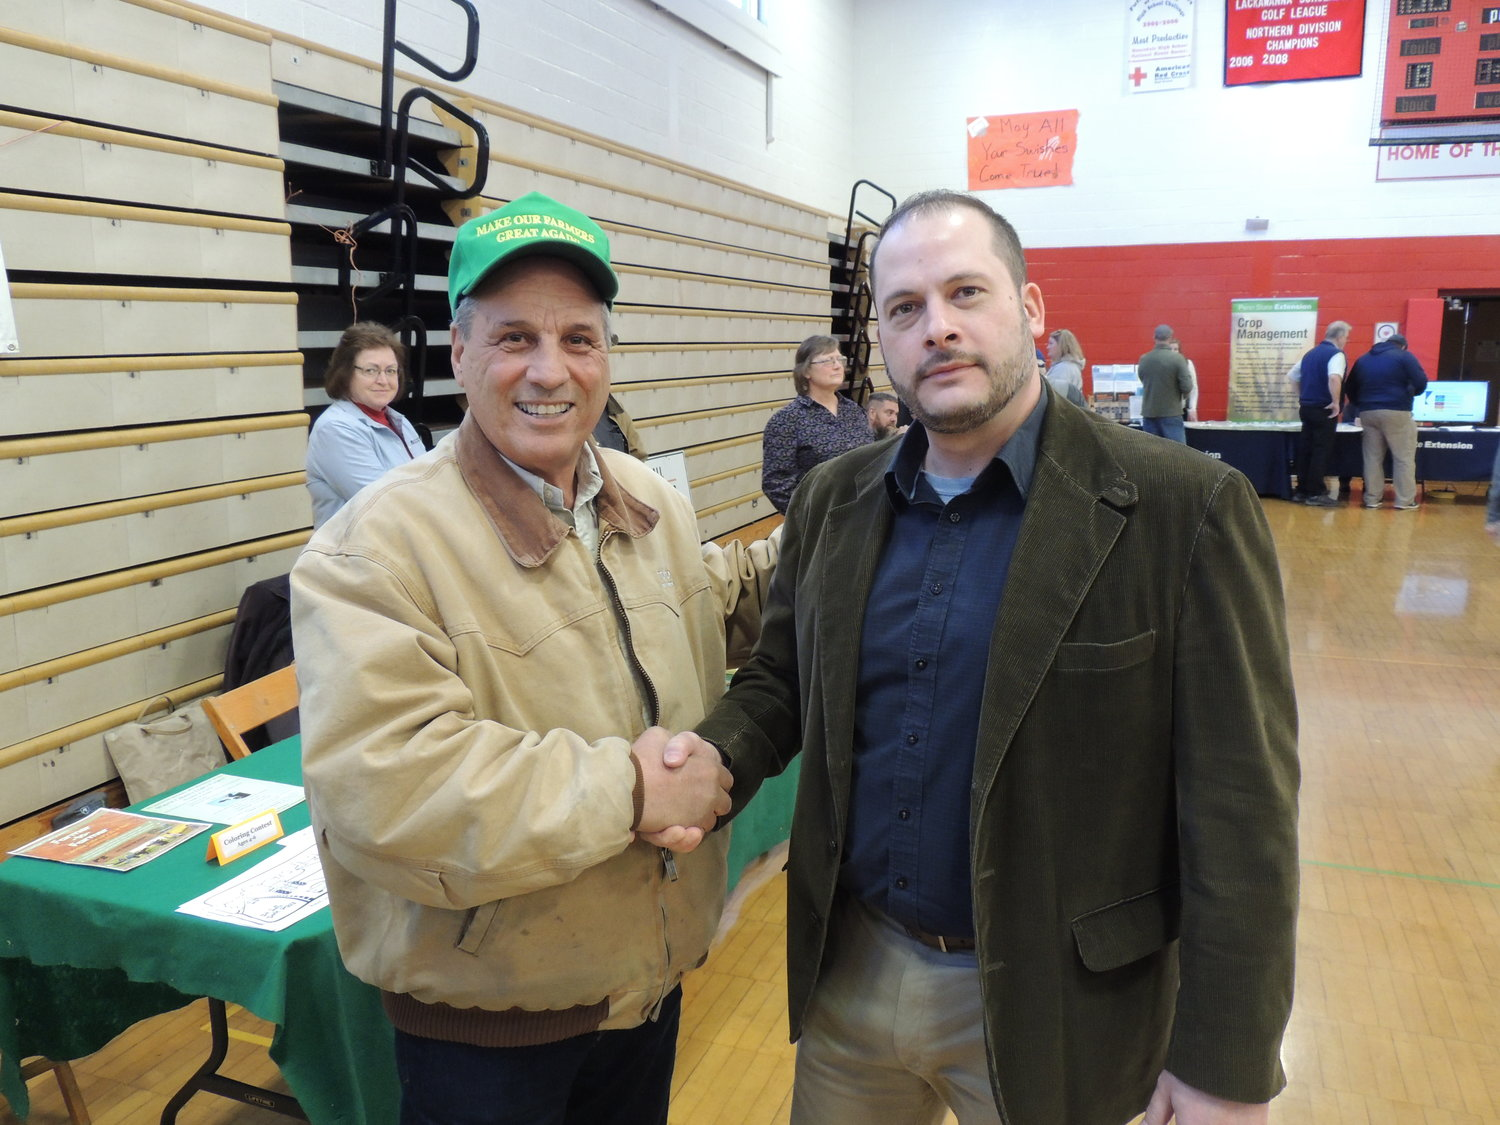 Mike Marsicano, left, shakes hands with Rep. Jonathan Fritz.